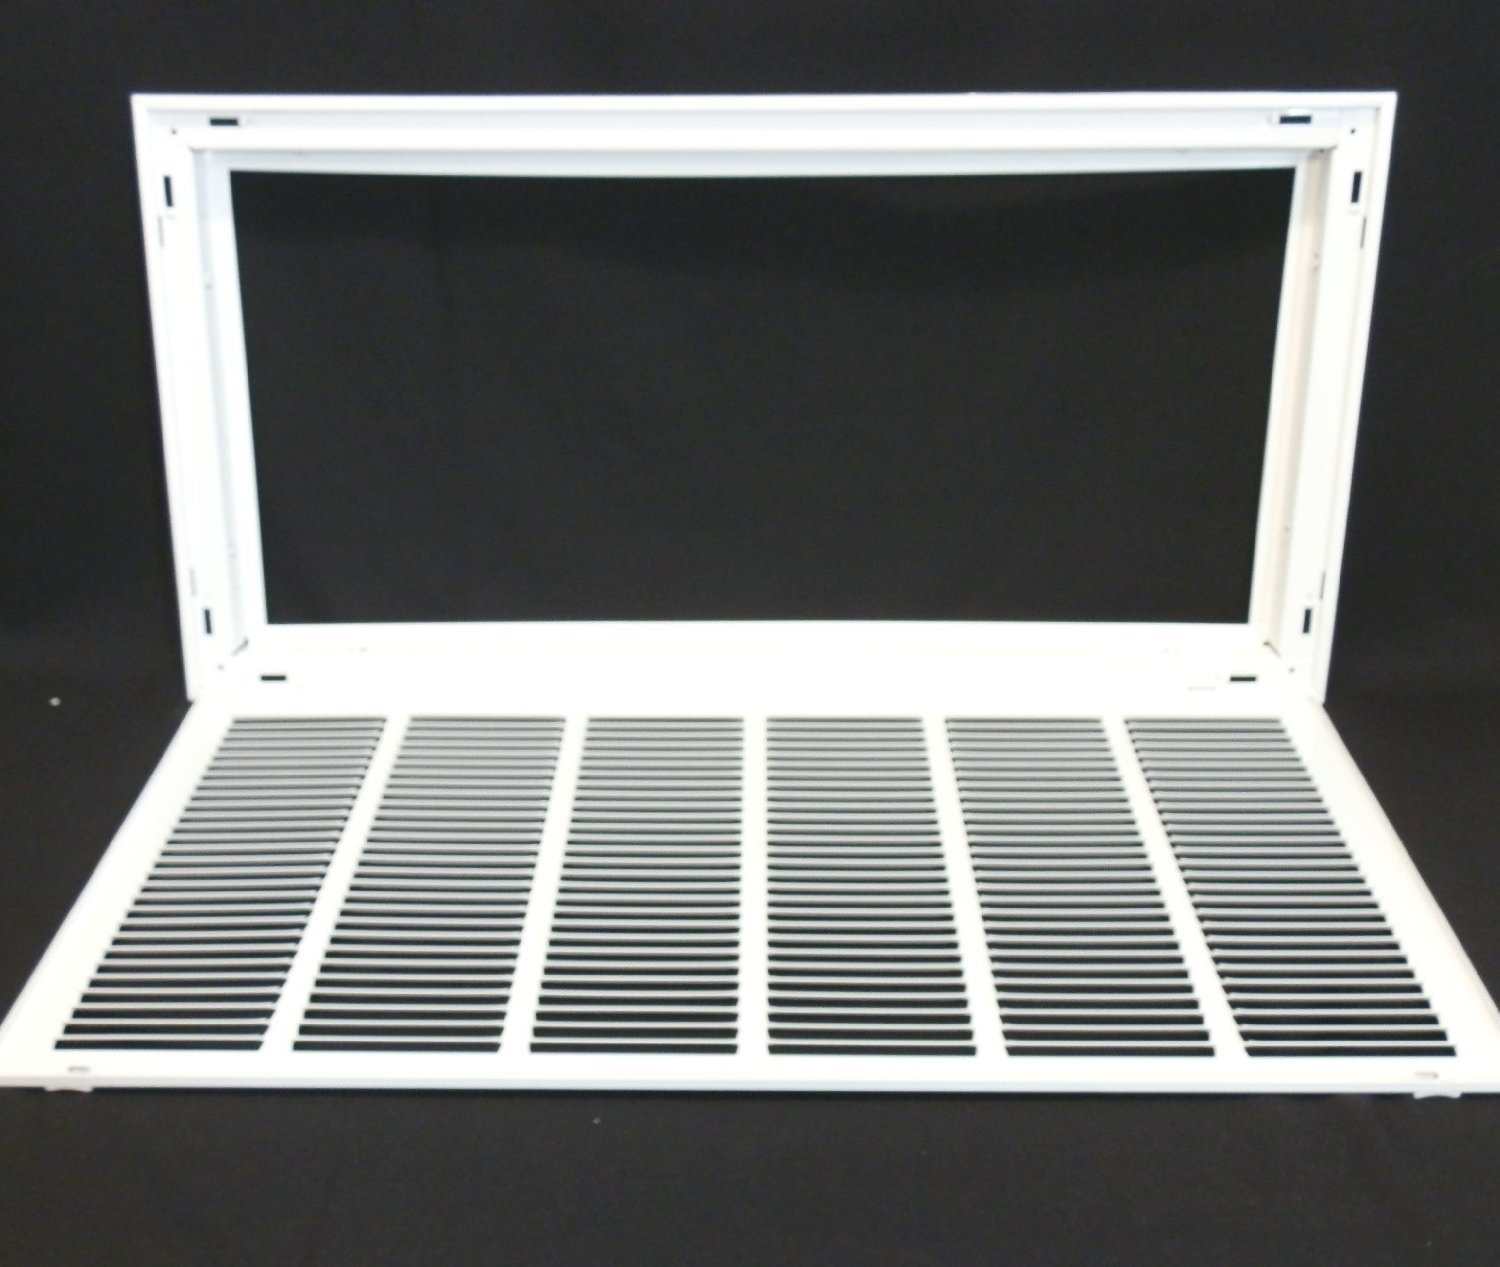 30'' X 14 Steel Return Air Filter Grille for 1'' Filter - Removable Face/Door - HVAC DUCT COVER - Flat Stamped Face - White [Outer Dimensions: 32.5''w X 16.5''h] by HVAC Premium (Image #2)